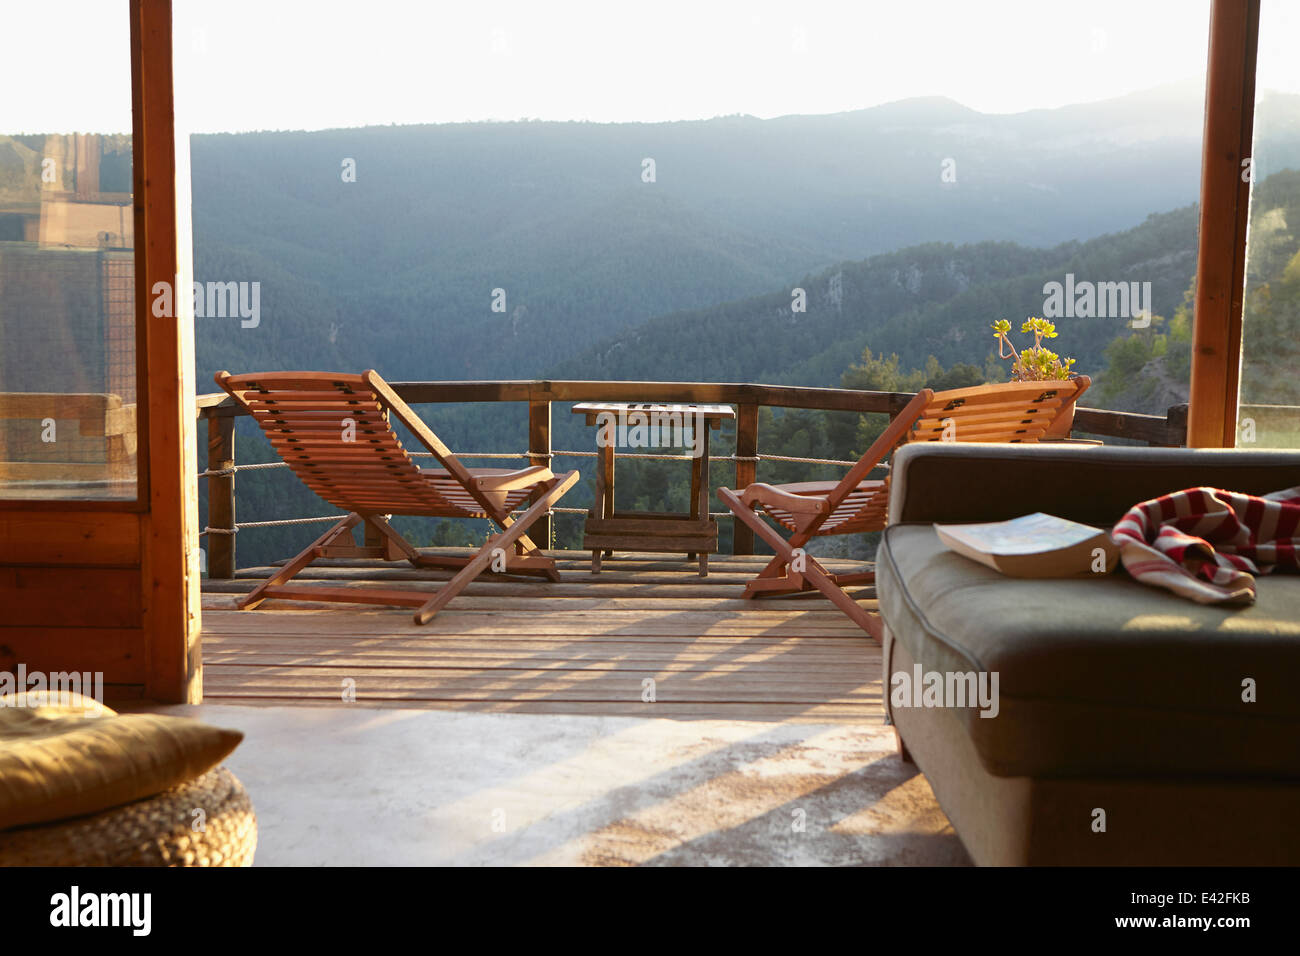 View from sitting room onto sunlit rural balcony - Stock Image